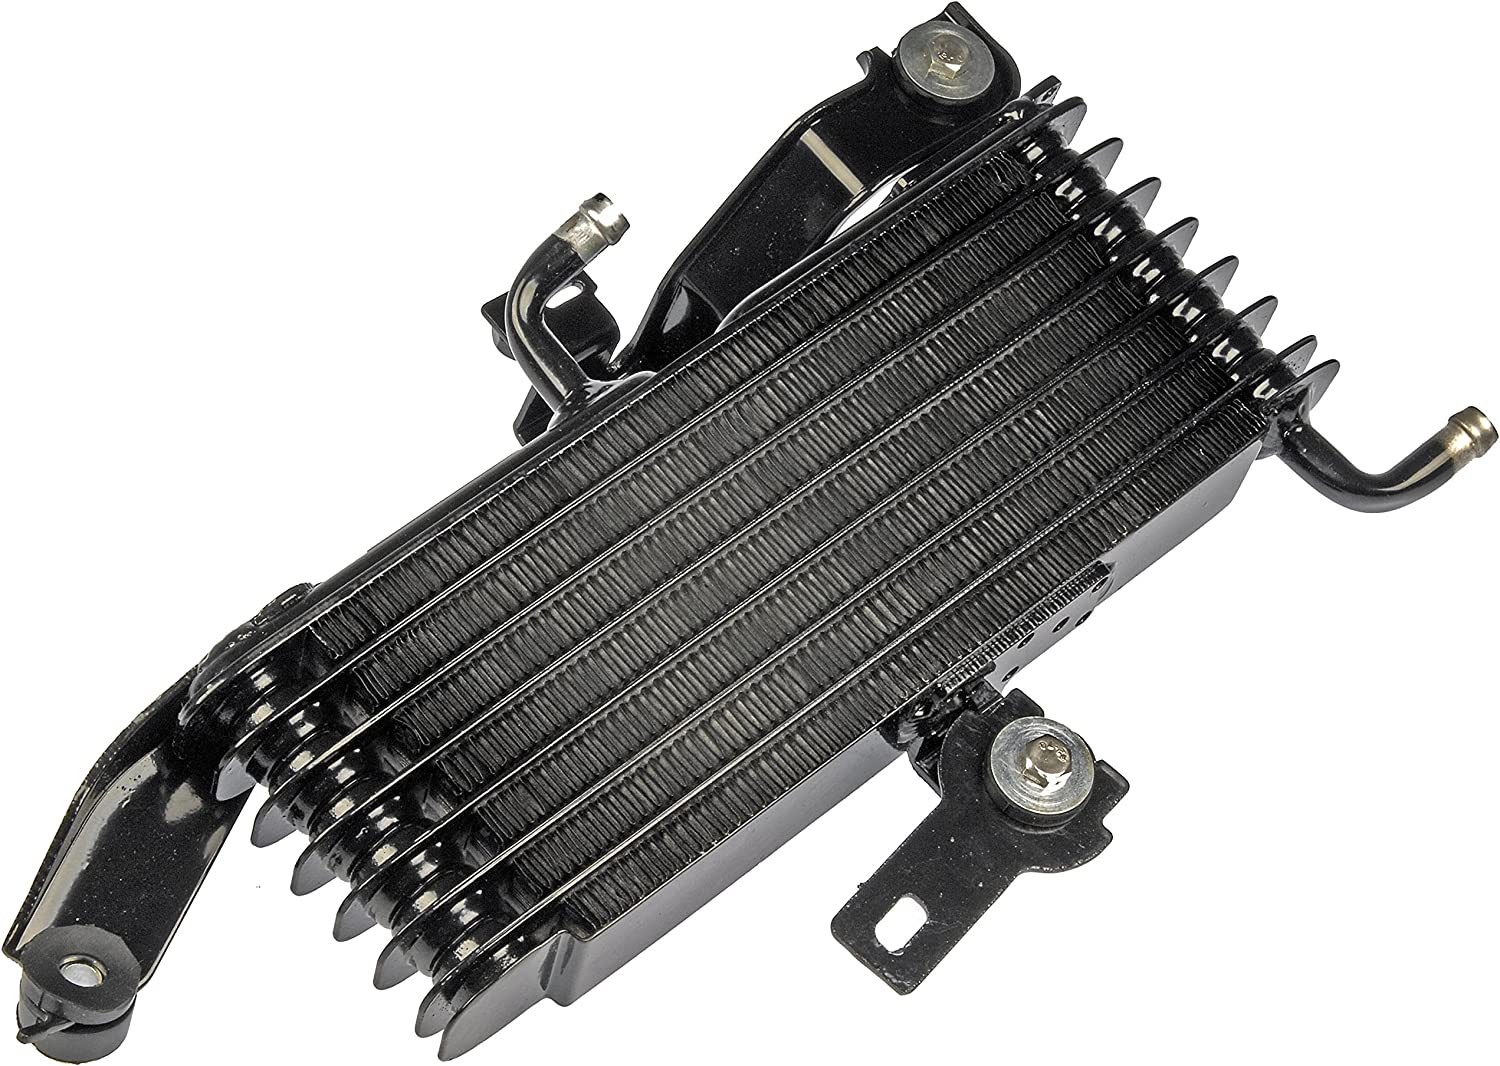 DORMAN 918-226 Transmission Oil Cooler